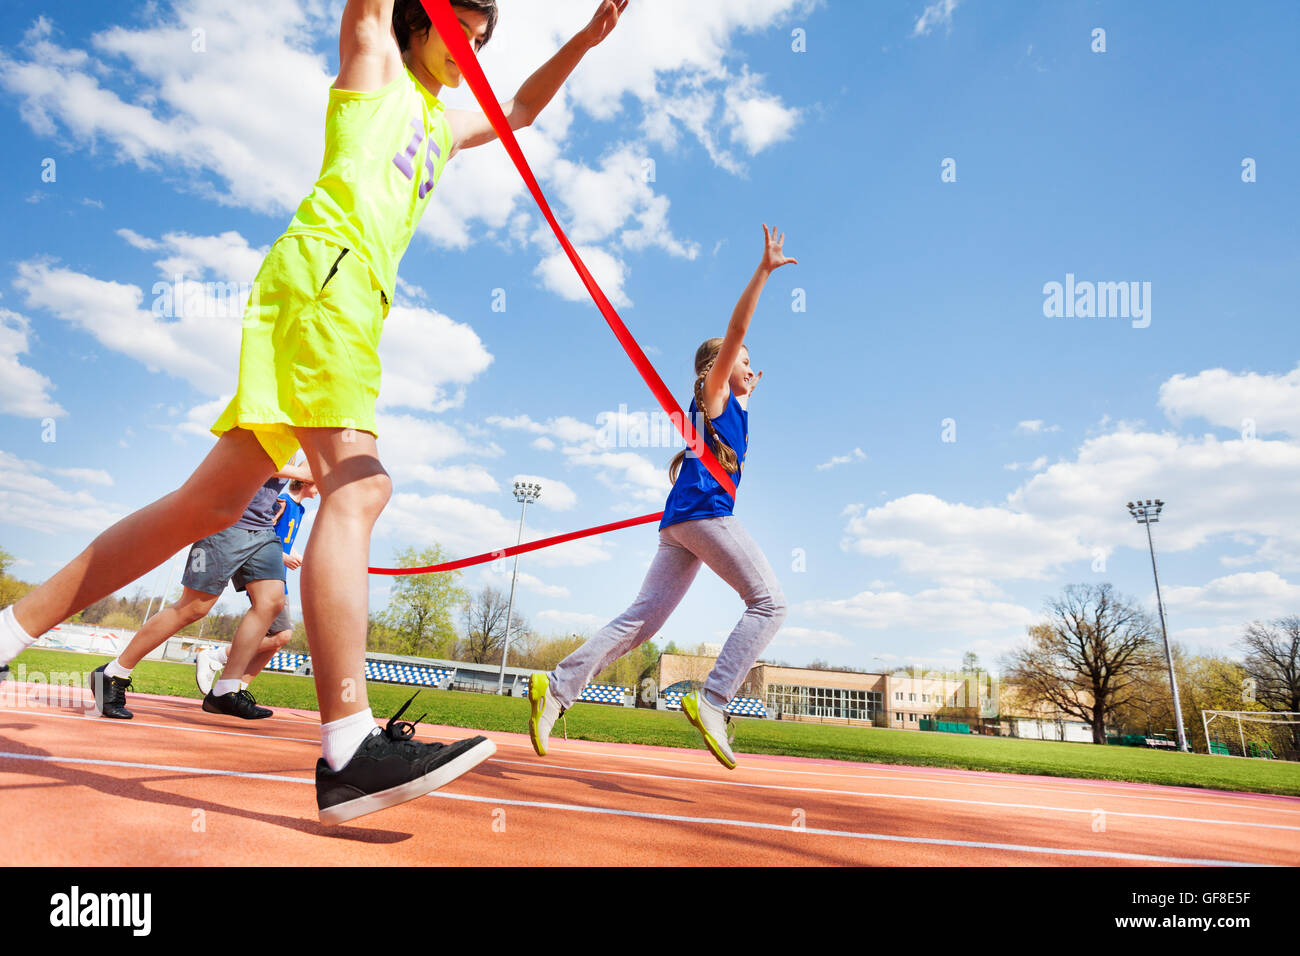 Happy girl crossing finish line on the racetrack - Stock Image